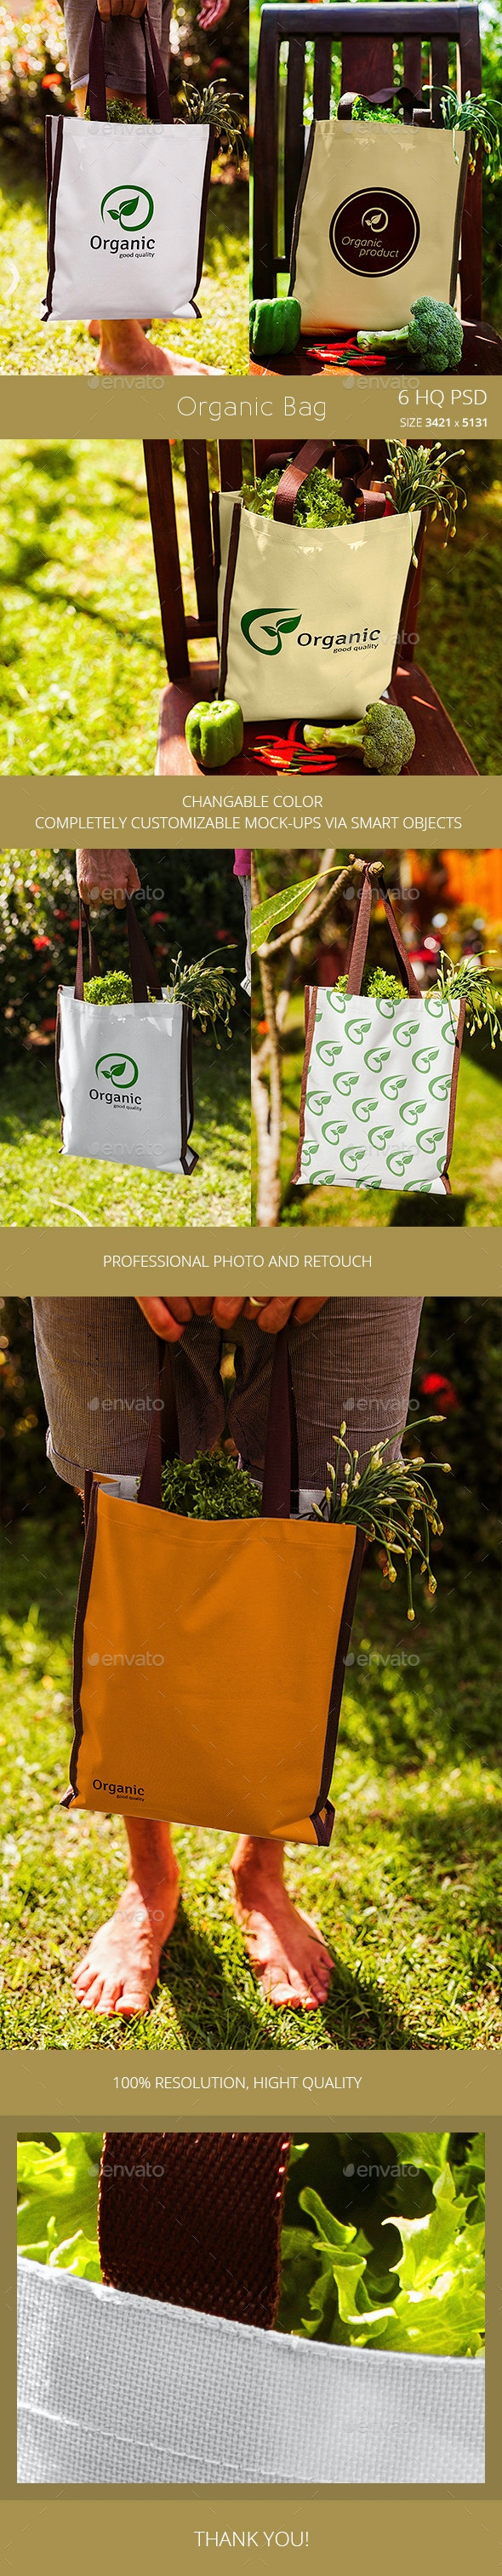 Organic Shopping Bag - Product Mock-Ups Graphics